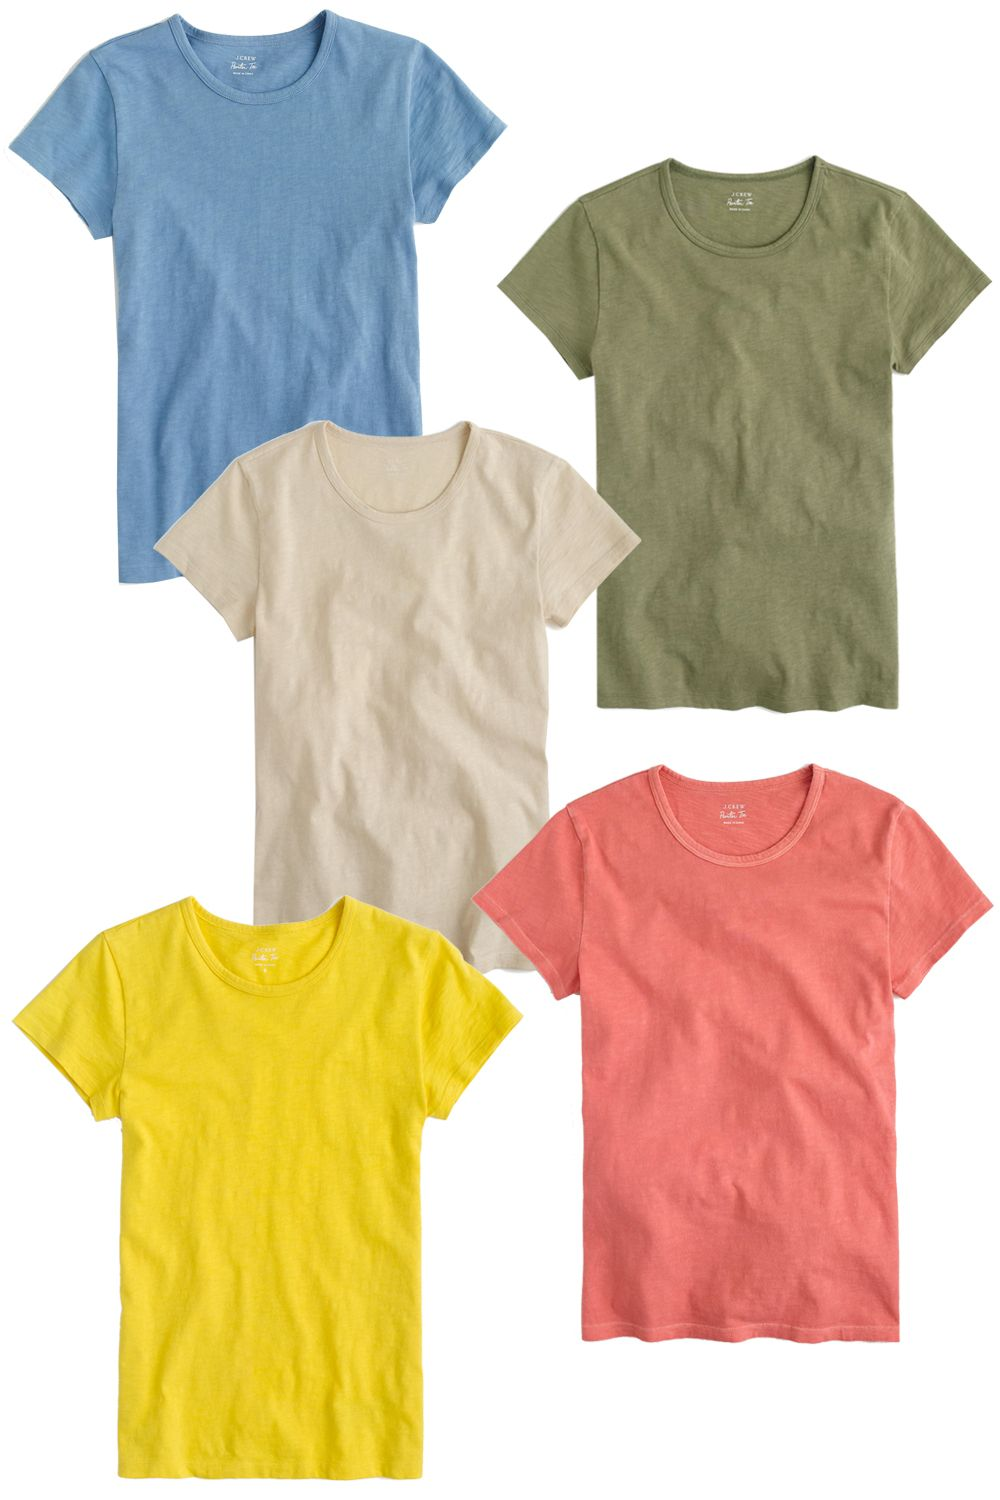 "<p>It's perfect! –Samira Nasr, Fashion Director<span></span></p><p><em>J.Crew Short Sleeve Painter T-Shirt, $25; </em><a href=""https://www.jcrew.com/womens_category/knitstees/shortsleevetees/PRDOVR~C5575/C5575.jsp?color_name=Spiced-Orange&srcCode=GGBS00006_99104256414_200317638_15965730078_18283950120_c_pla&sisearchengine=197&siproduct=C5575&noPopUp=true&source=googlePLA&gclid=CPS16vC_yMsCFZQbgQodIzYNBQ&gclsrc=aw.ds""><em>jcrew.com</em></a></p>"